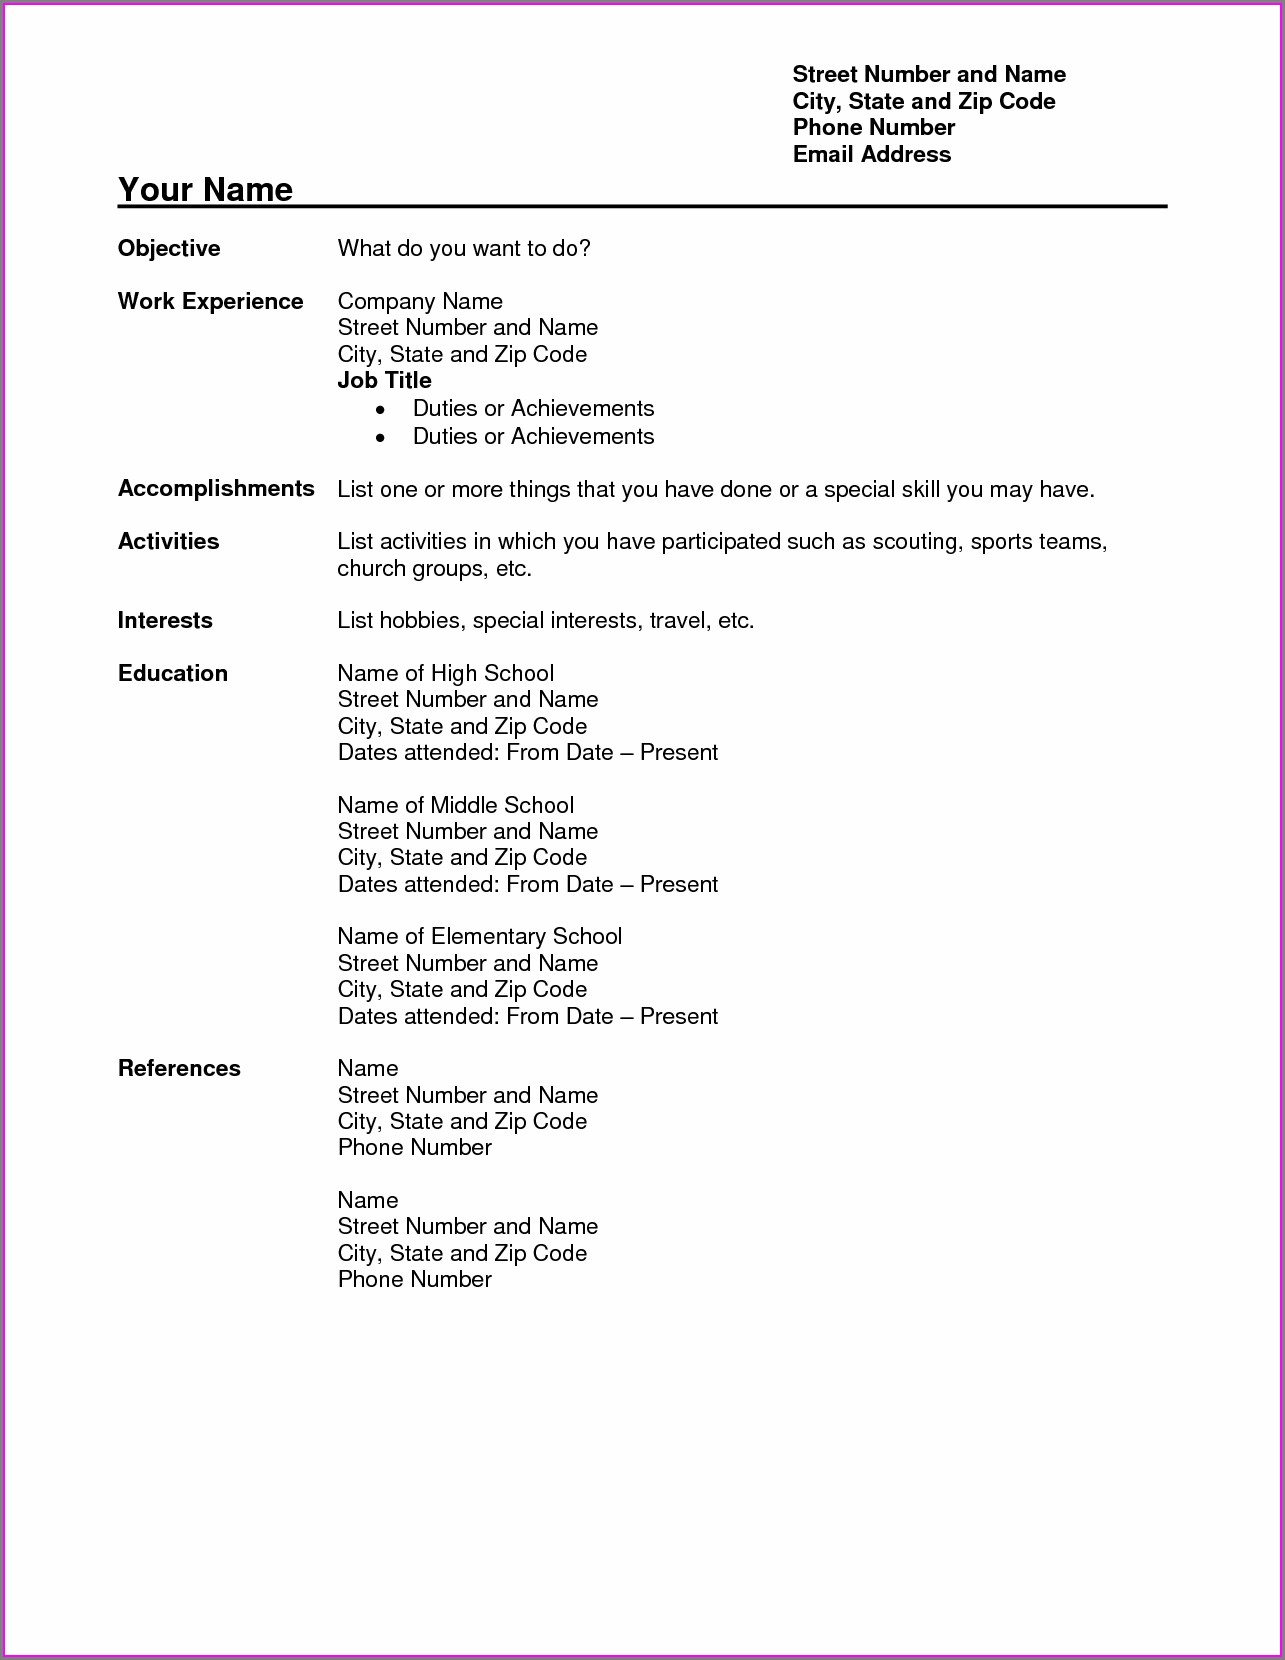 Indian Teacher Resume Templates Microsoft Word 2007